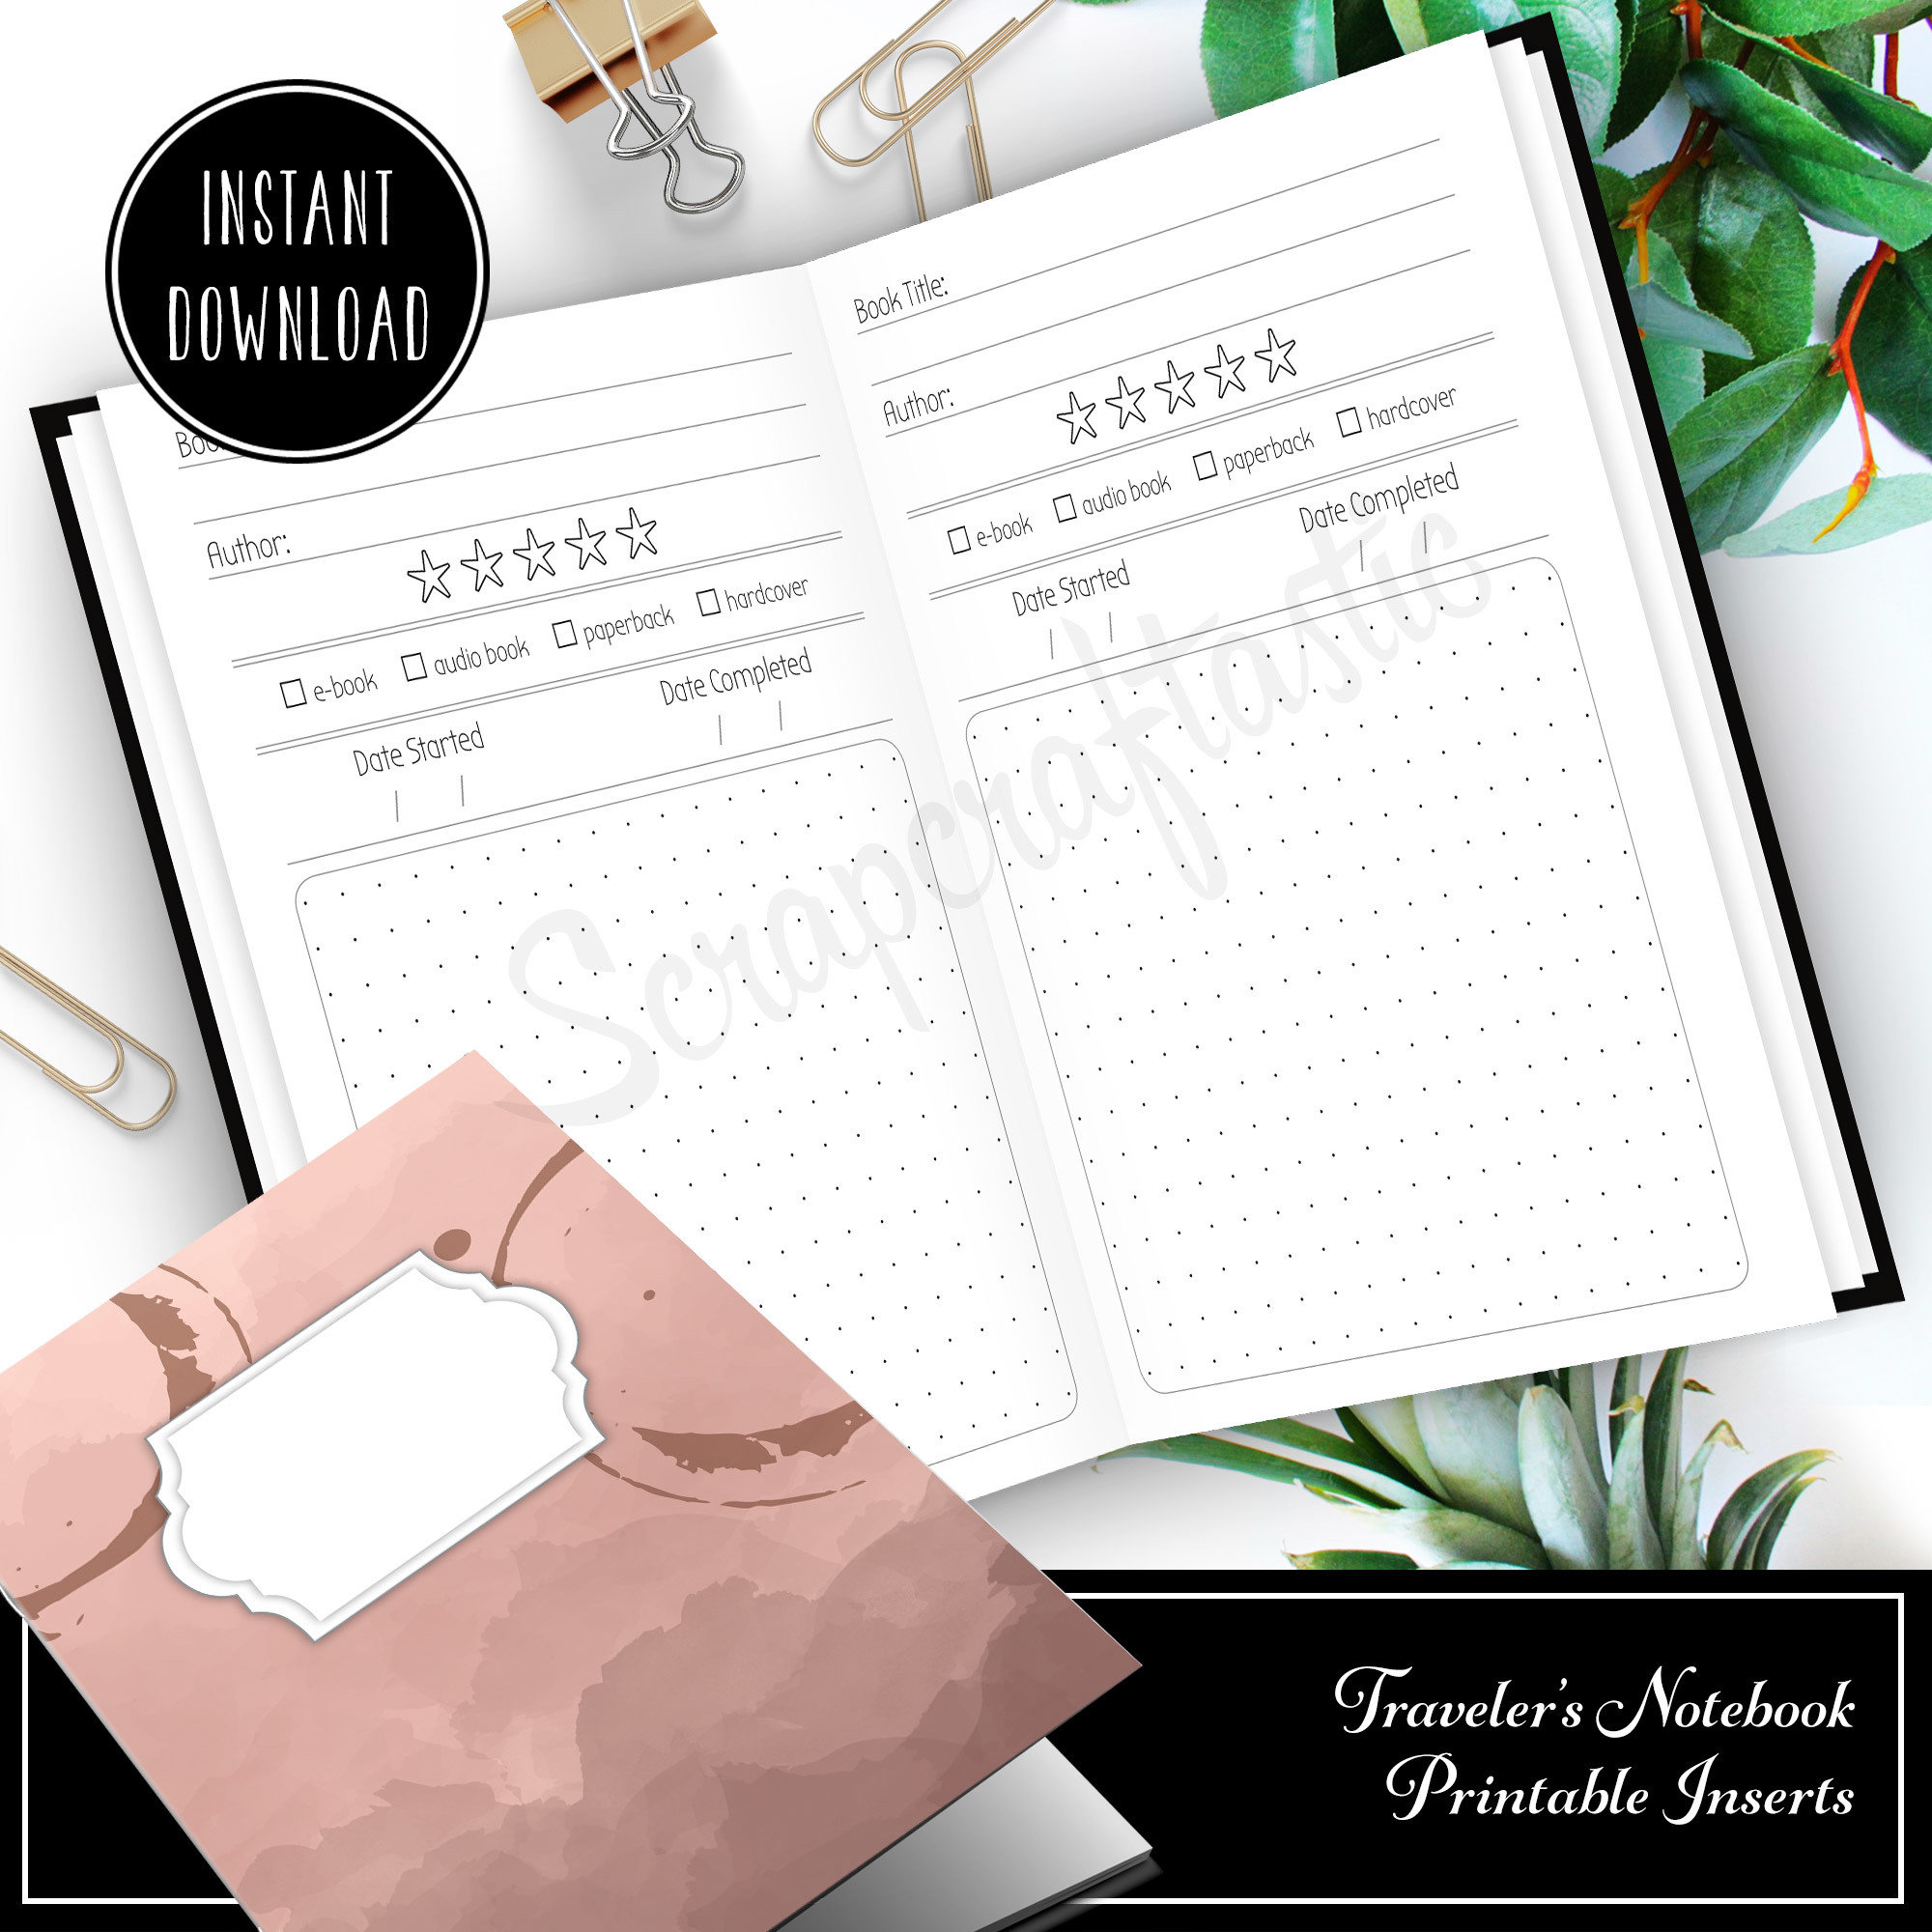 Book / Reading Log and Review A6 Traveler's Notebook Printable Insert 40005